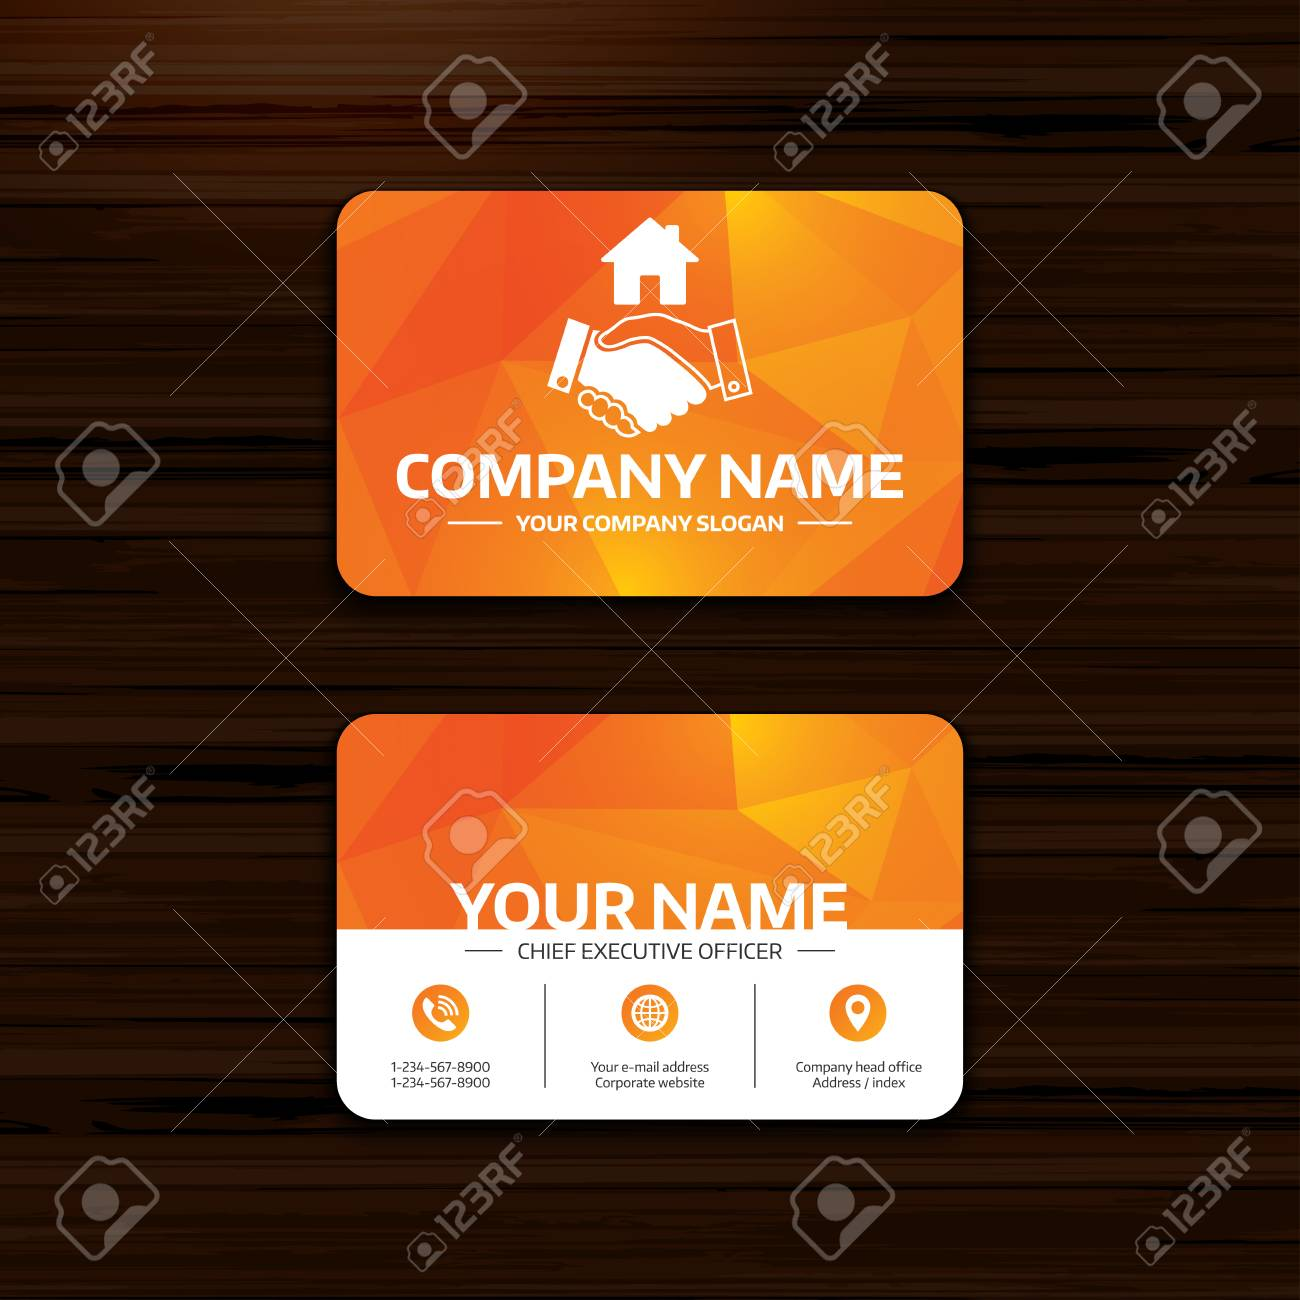 Business Or Visiting Card Template Home Handshake Sign Icon Successful With House Building